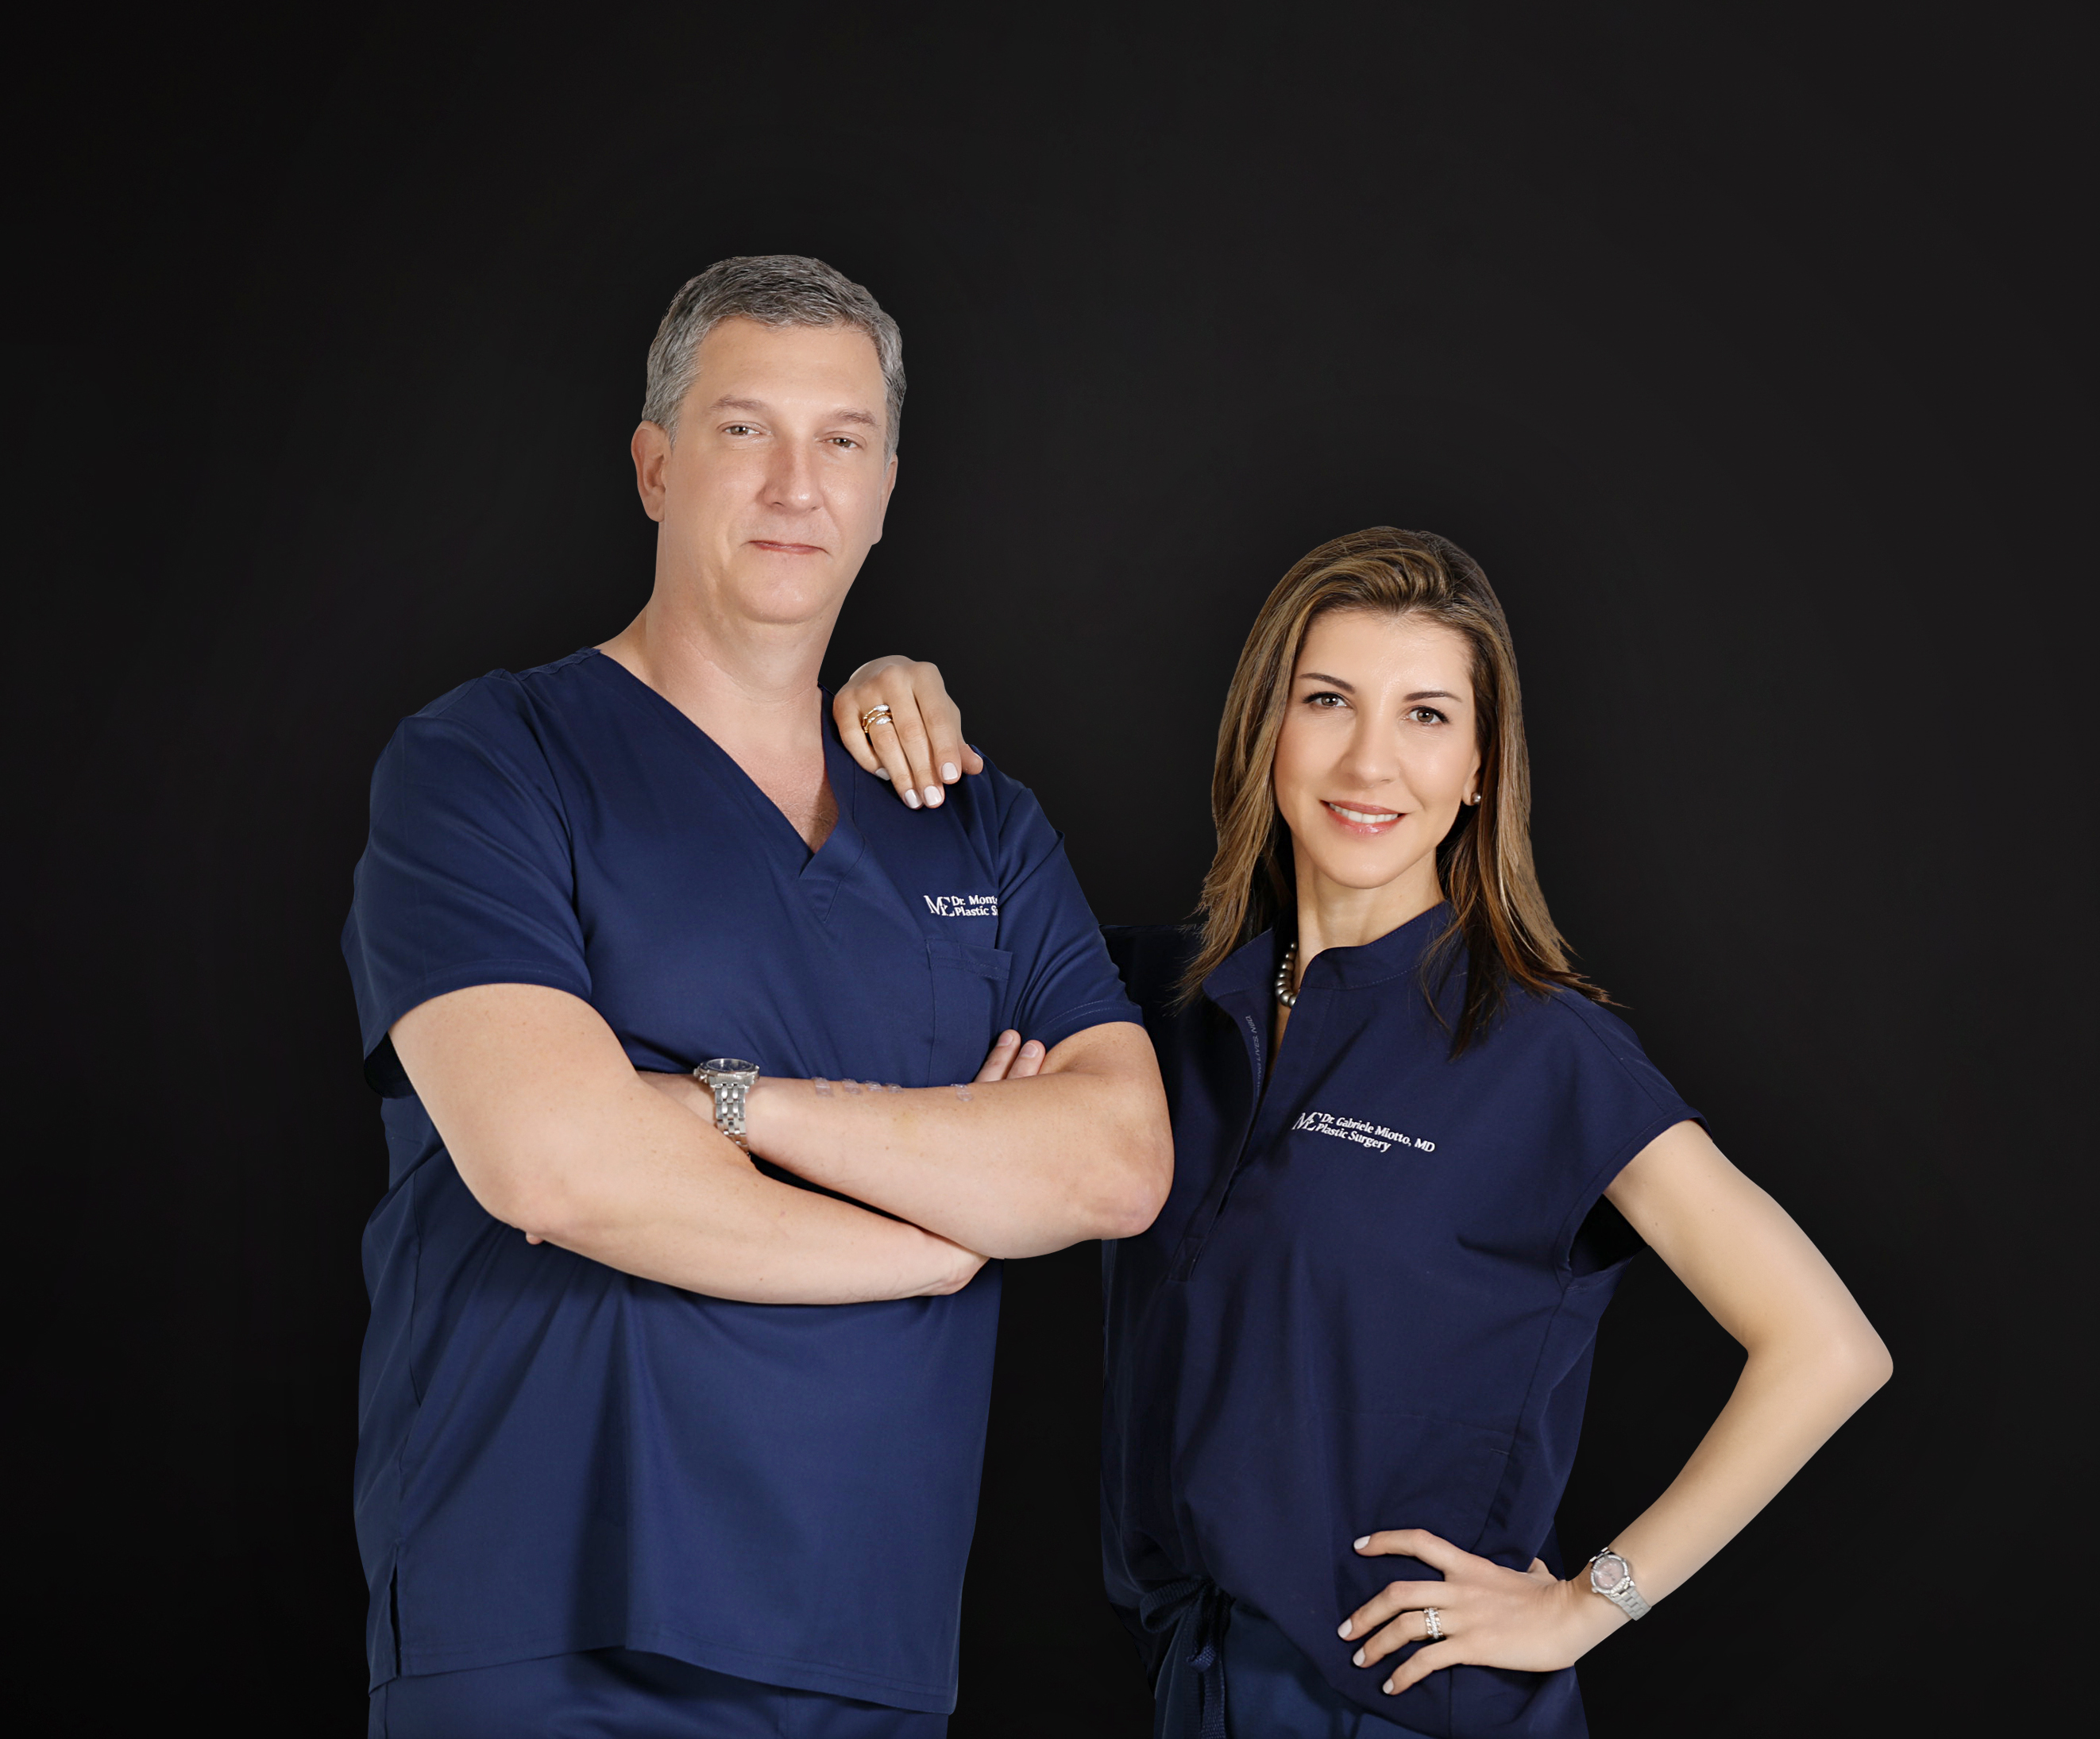 ME Plastic Surgery - Dr. Miotto & Dr. Eaves